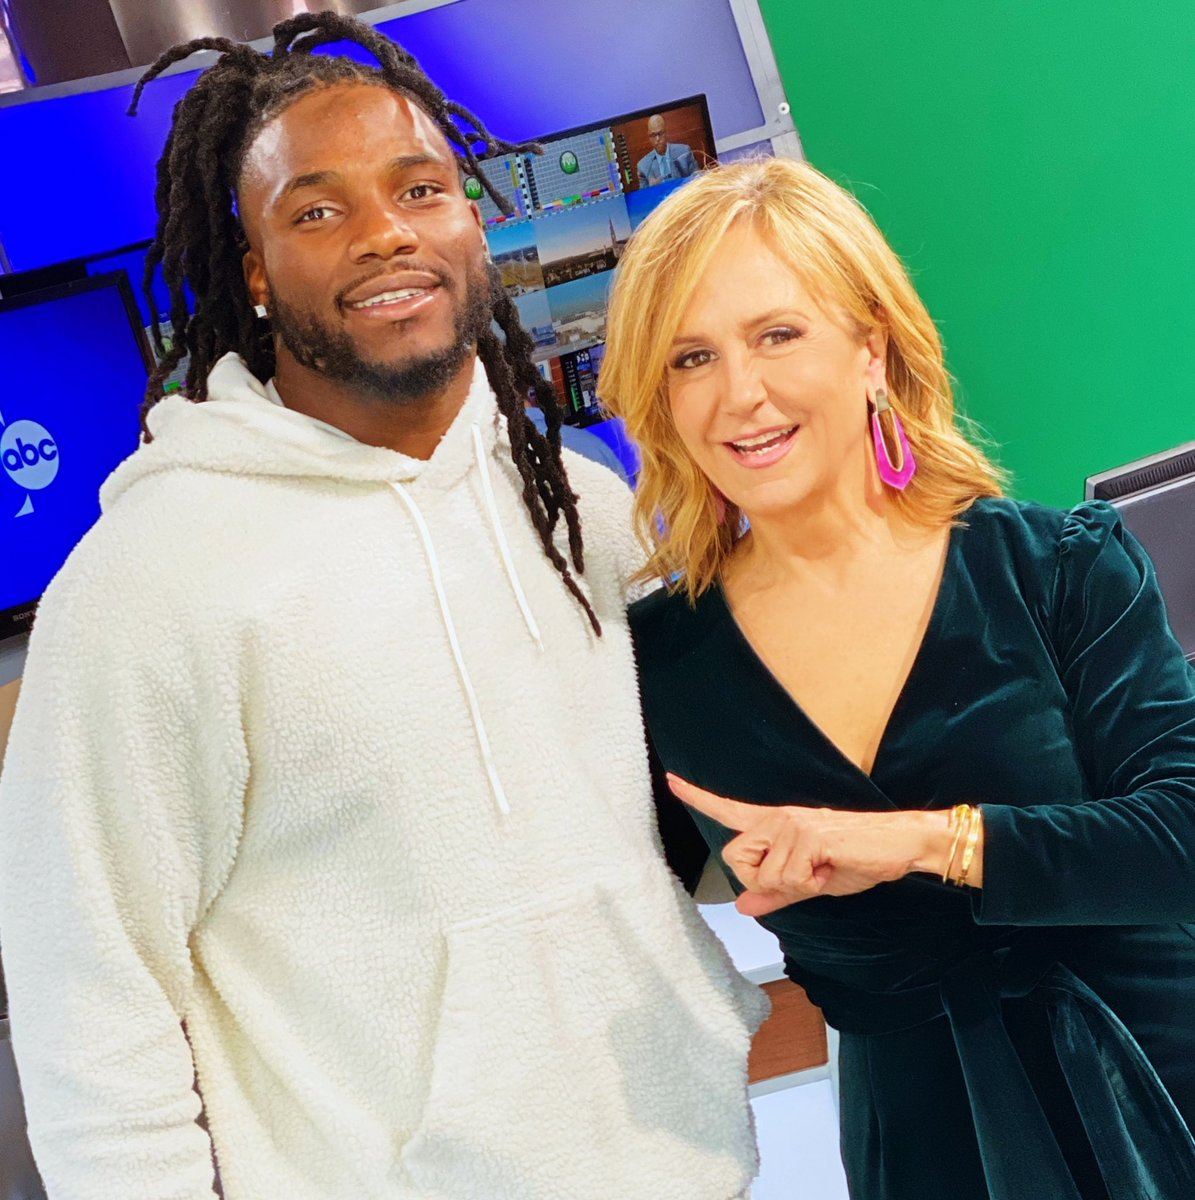 Look who stopped by GMT! Watch for me interviewing Dallas Cowboys linebacker Jaylon Smith  about his partnership with A #1 Air (& we talk a little football too:) #dallascowboys #nfl #goodmorningtexas